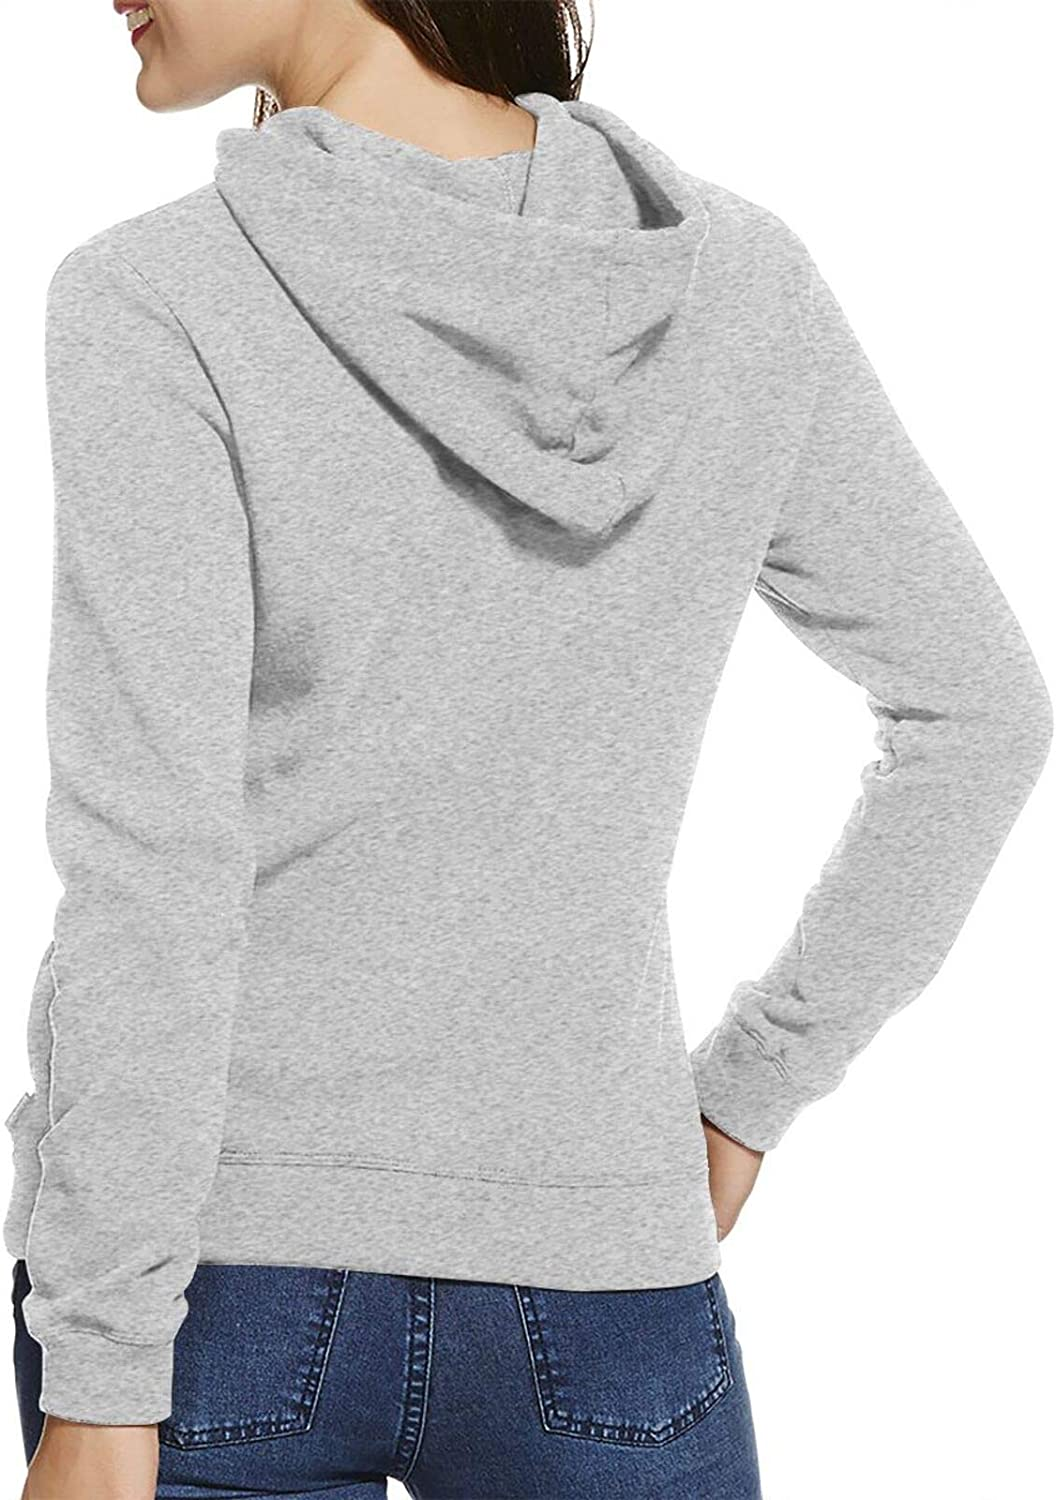 Gun American Flag Fashion Pullover Hoodie Women's Long Sleeve Round Neck Hooded Sweatshirt Gray